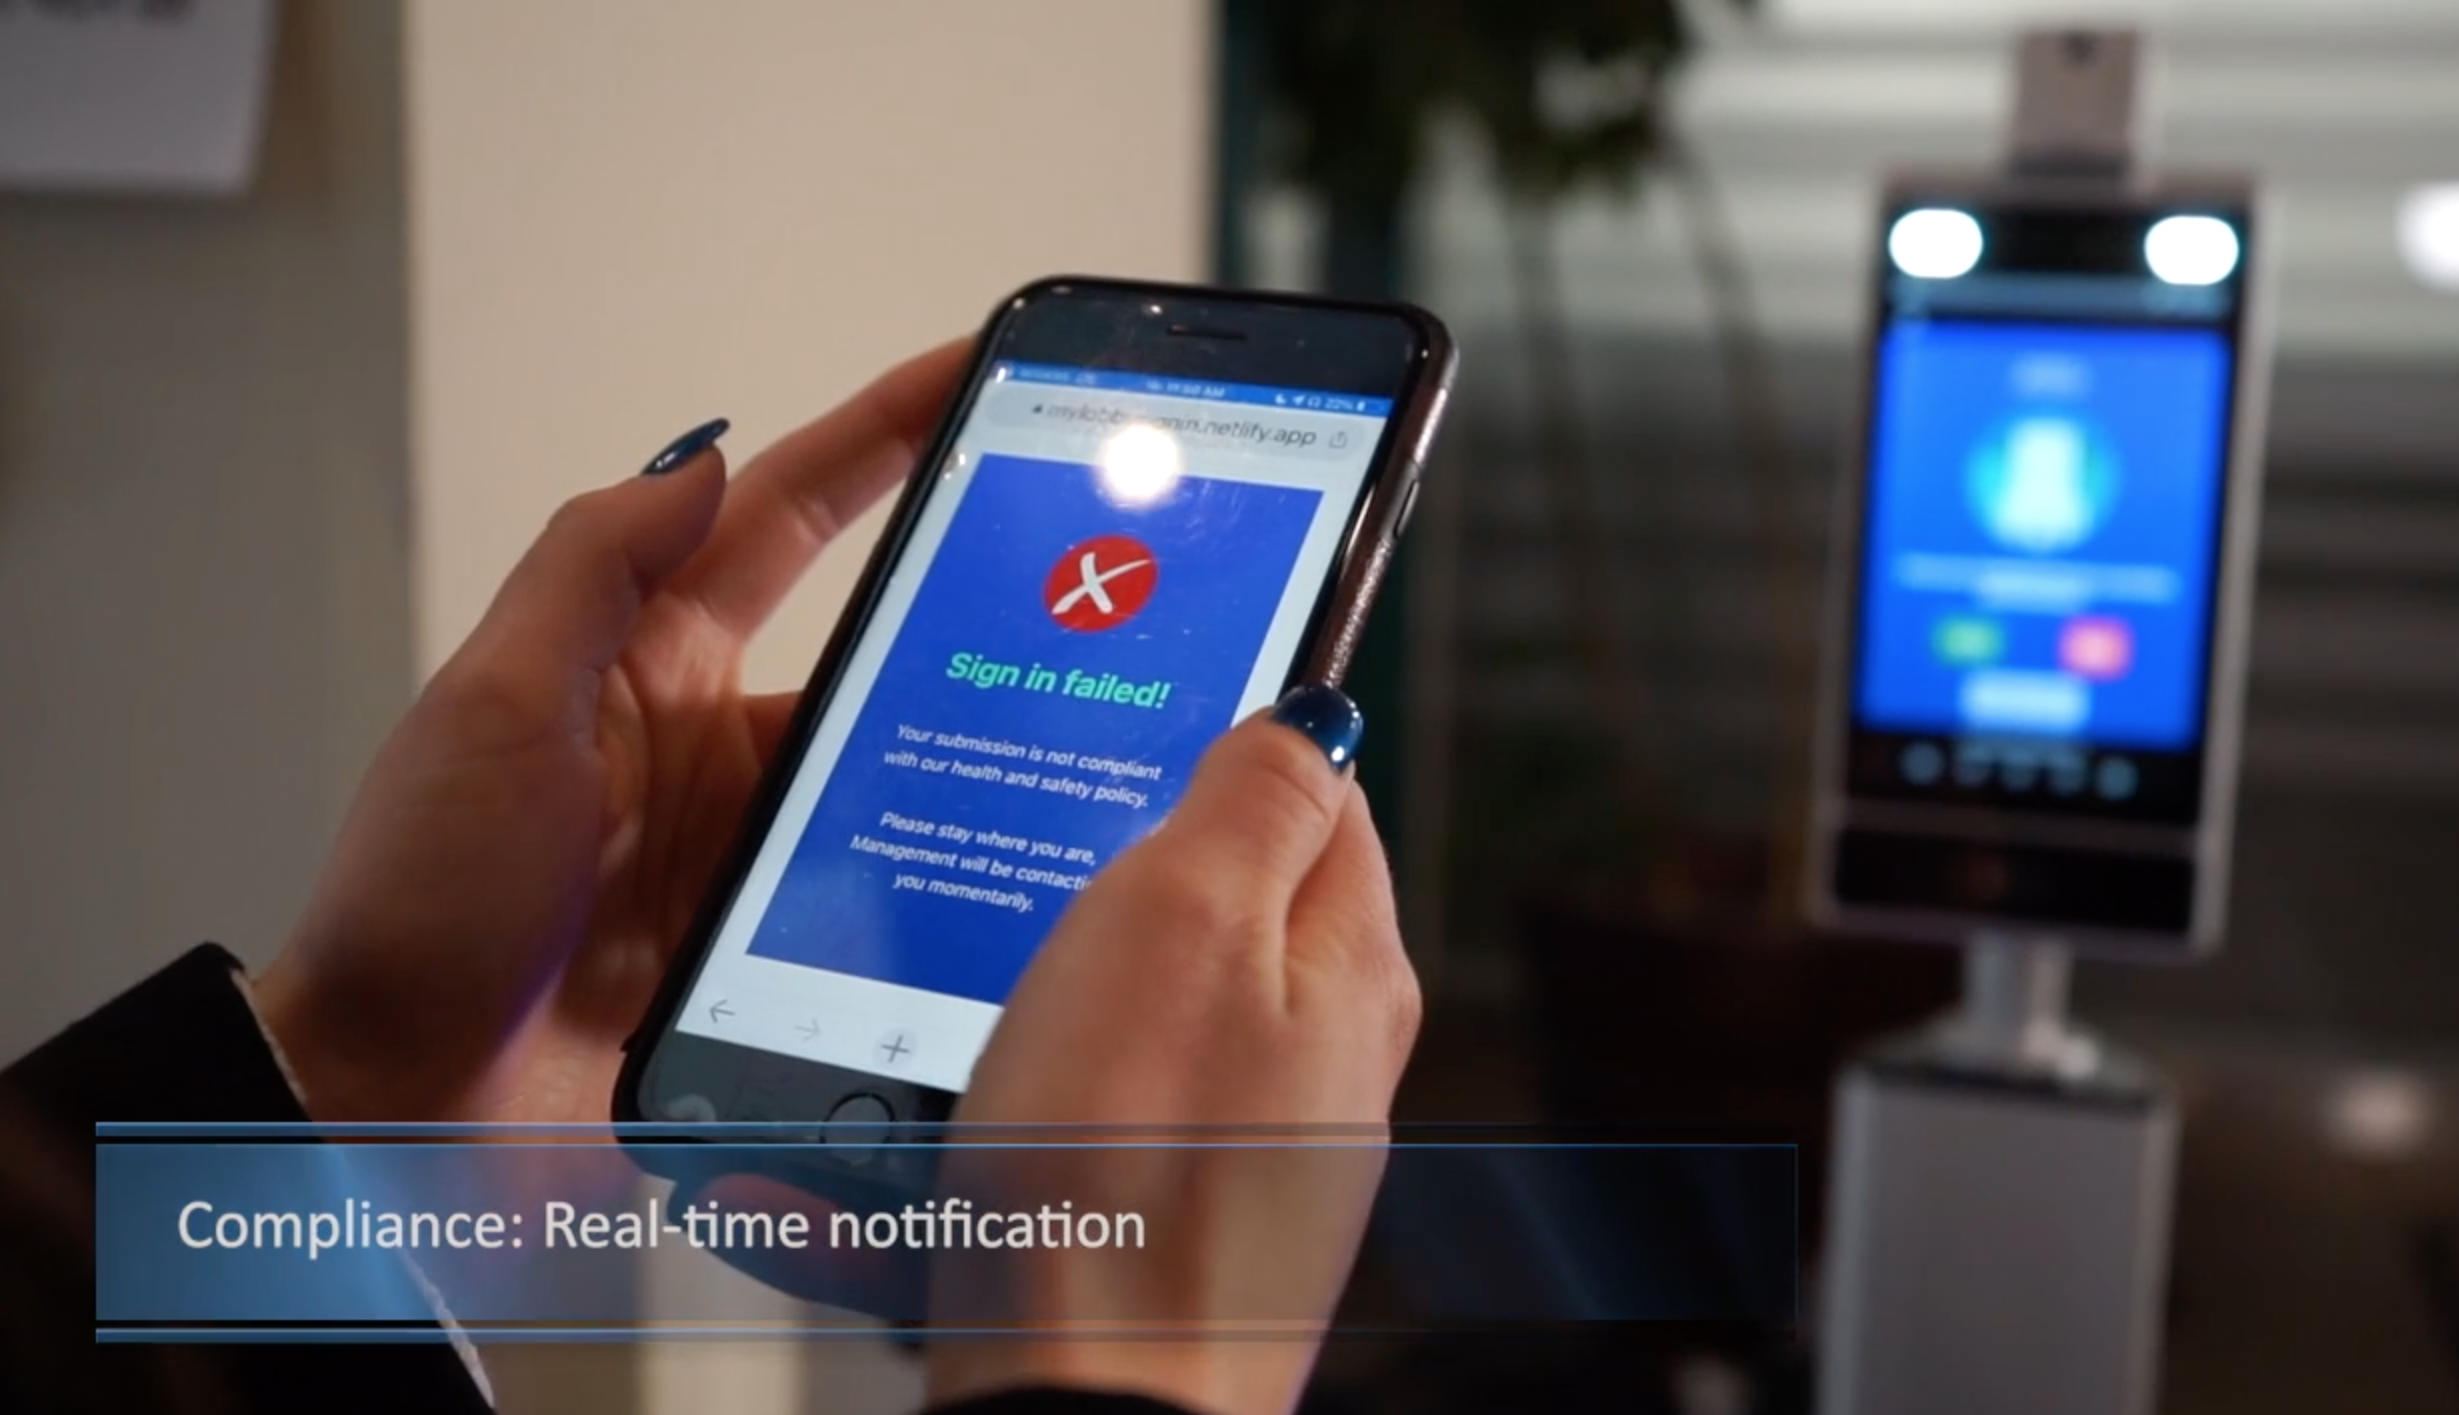 Real-time compliance notification